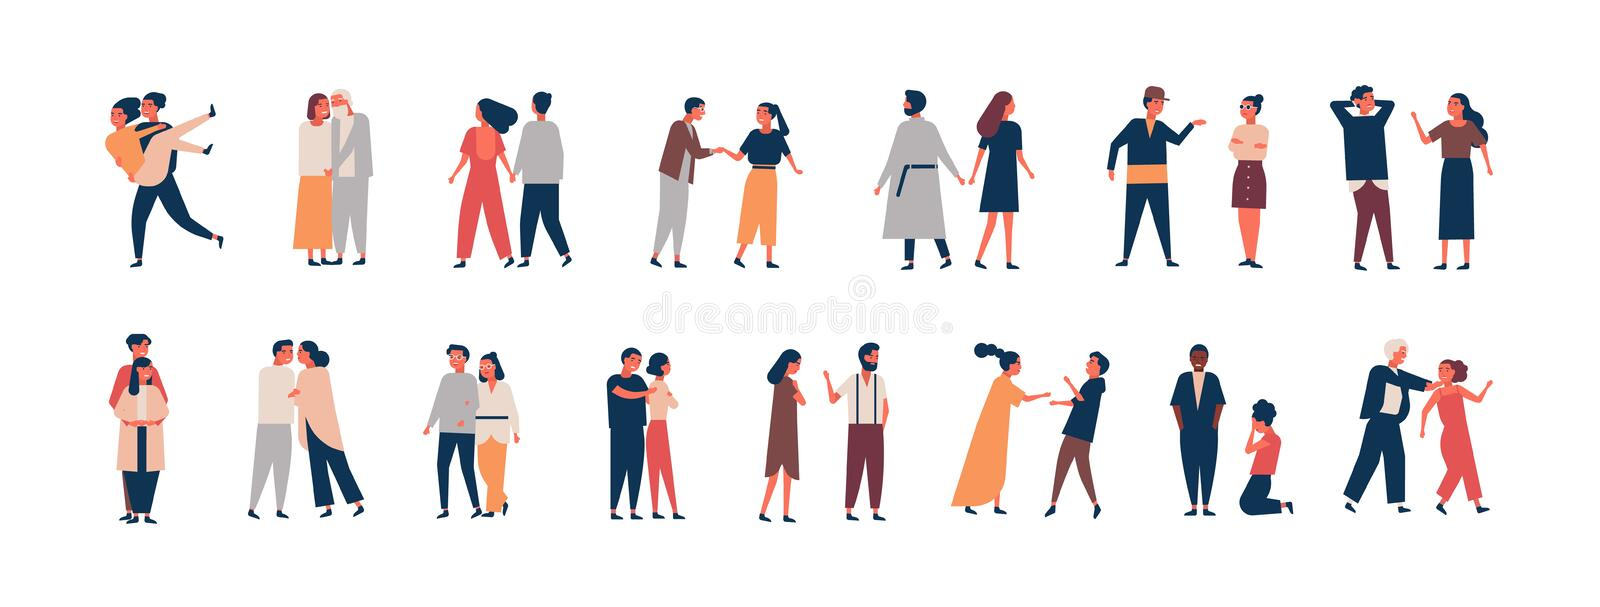 Collection of relationship development stages. Set of men and women dating, quarreling, hugging, fighting. Couples or stock illustration